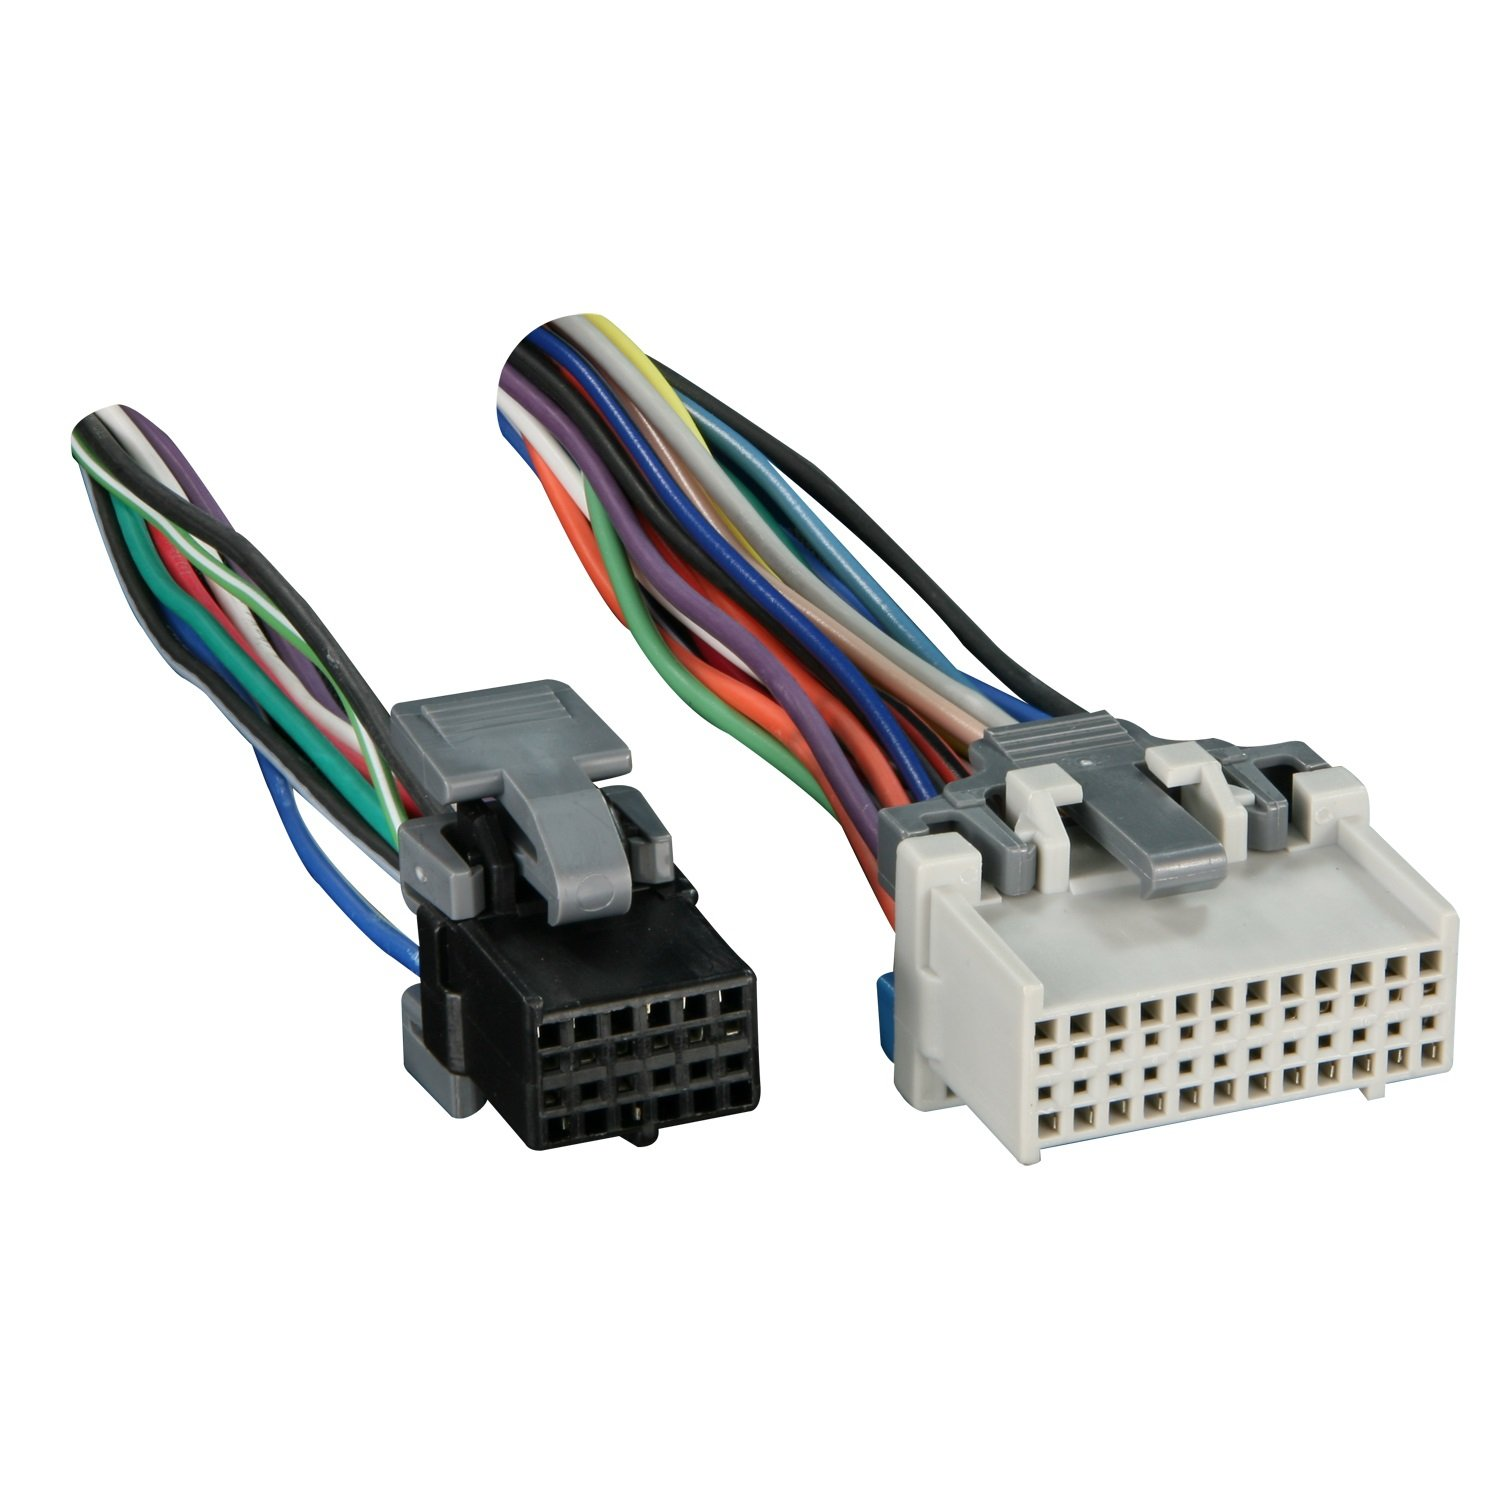 711log4bdML._SL1500_ amazon com metra turbowires 71 2003 1 wiring harness car electronics how much does it cost to replace a wiring harness at readyjetset.co